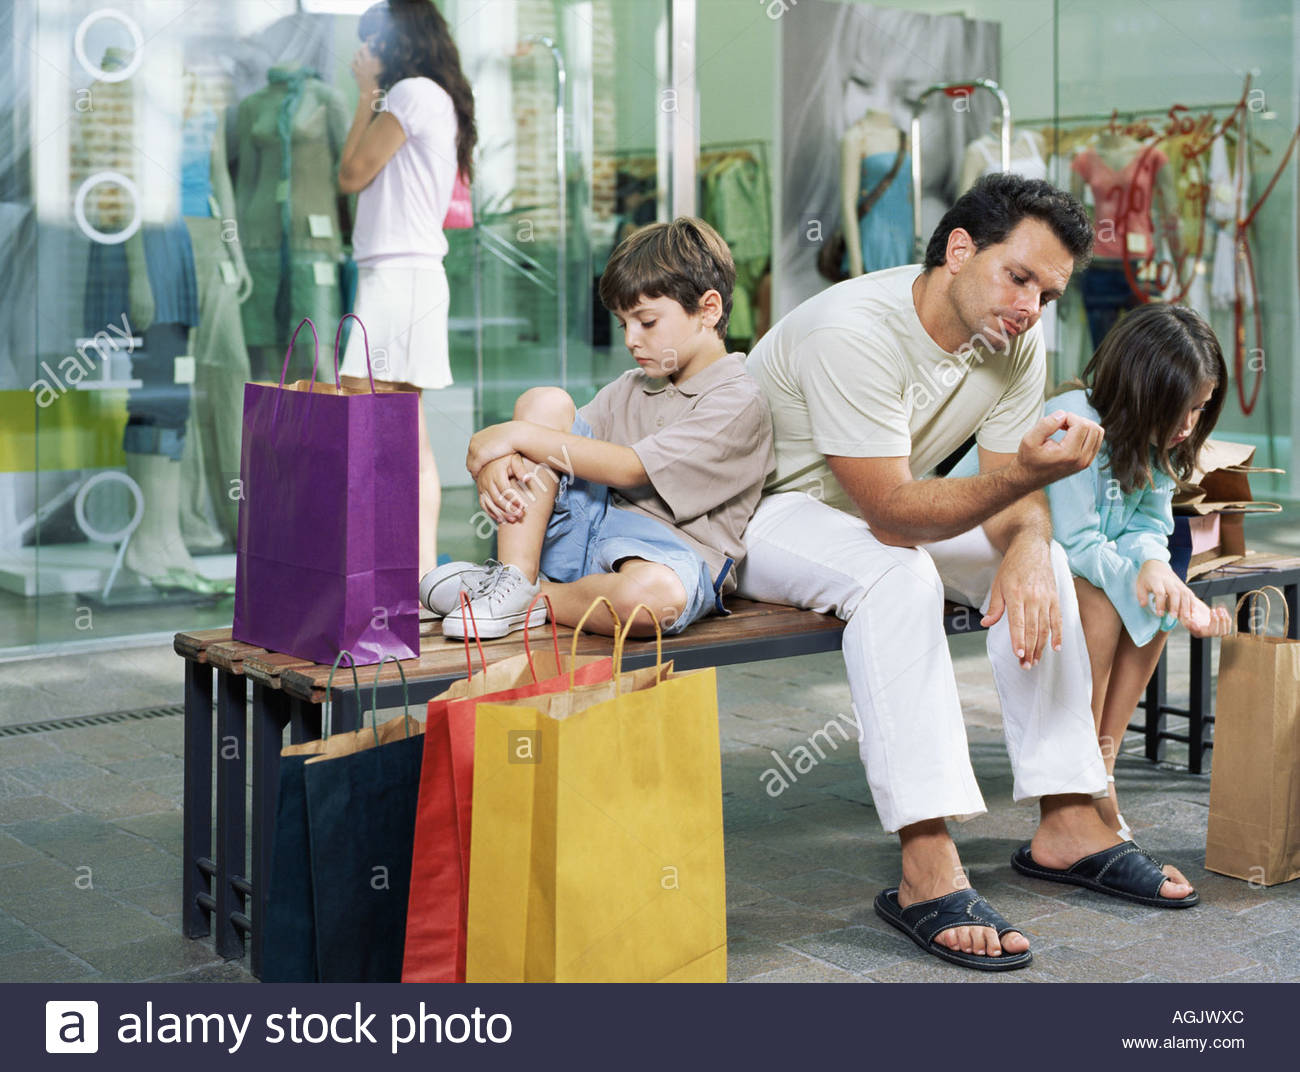 Family waiting for woman shopper - Stock Image